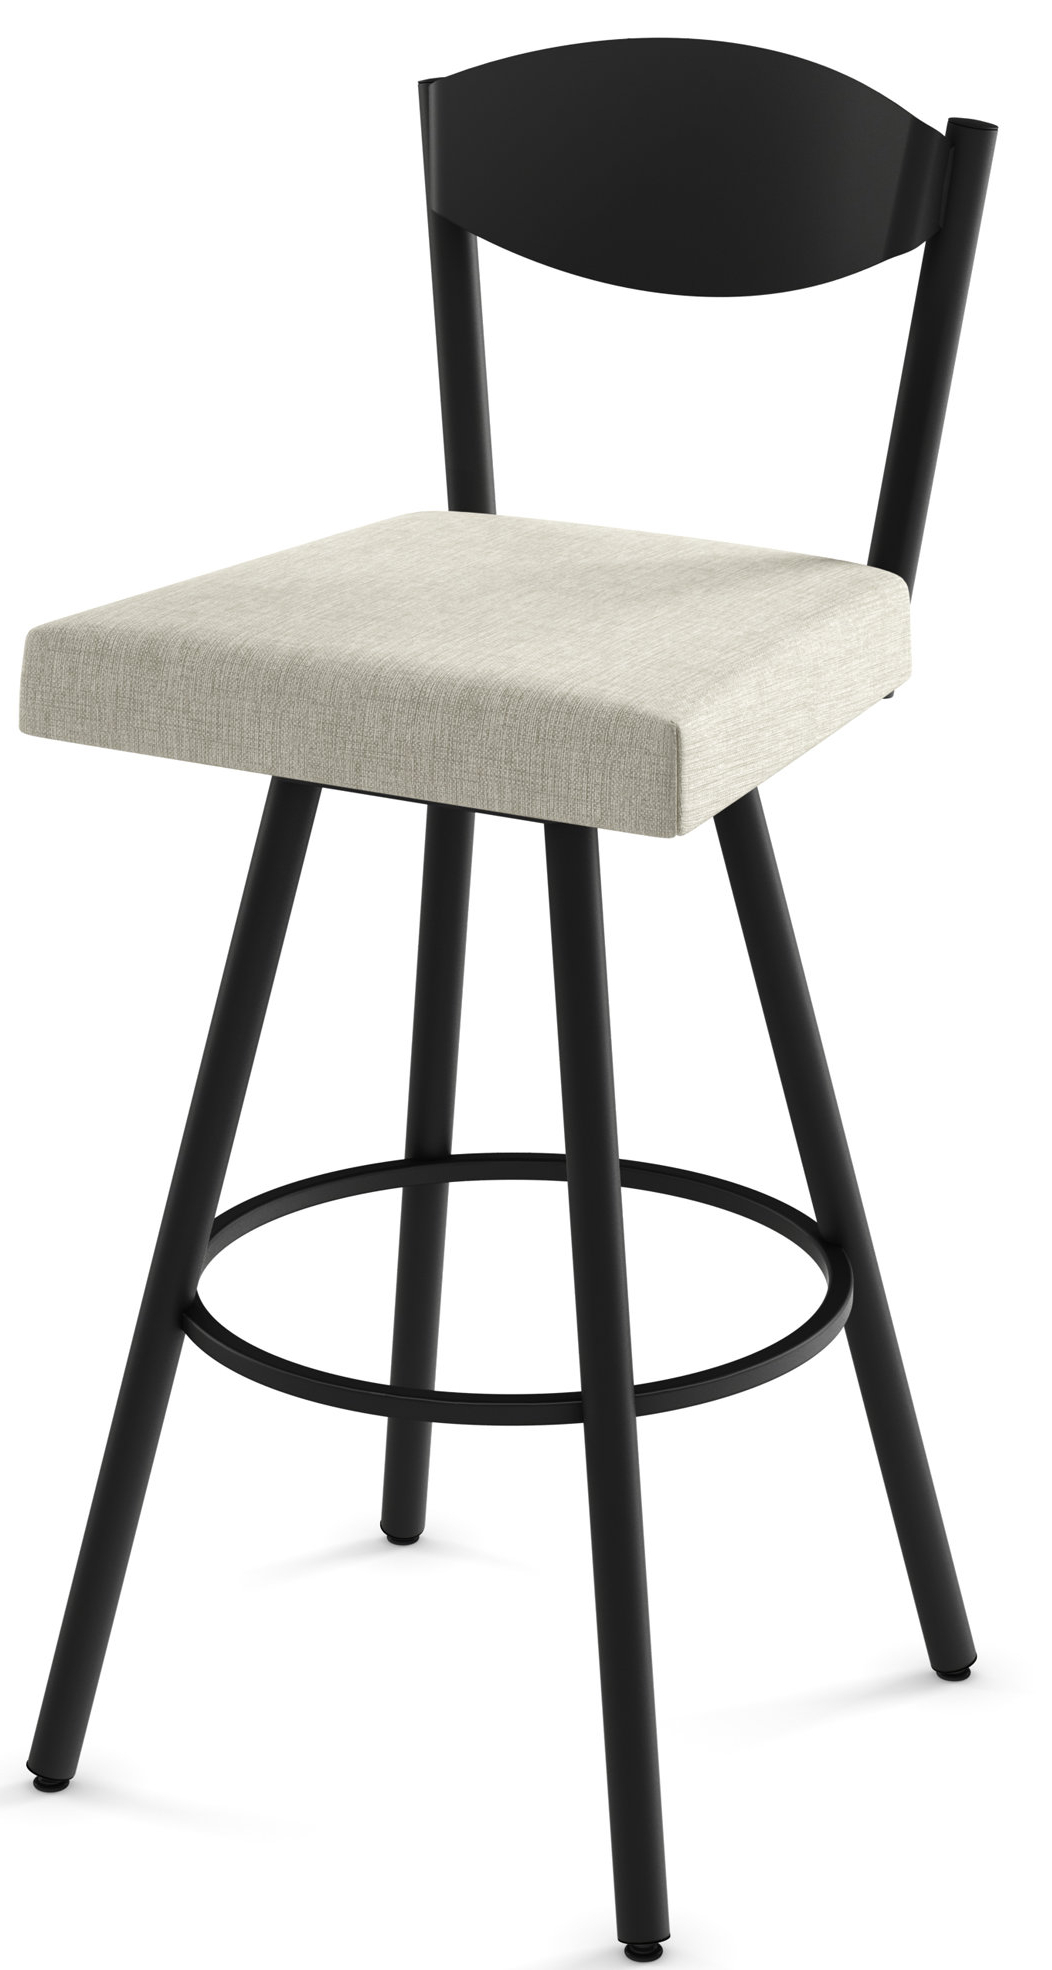 Red Barrel Studio Maier Swivel Bar Stool (View 12 of 18)